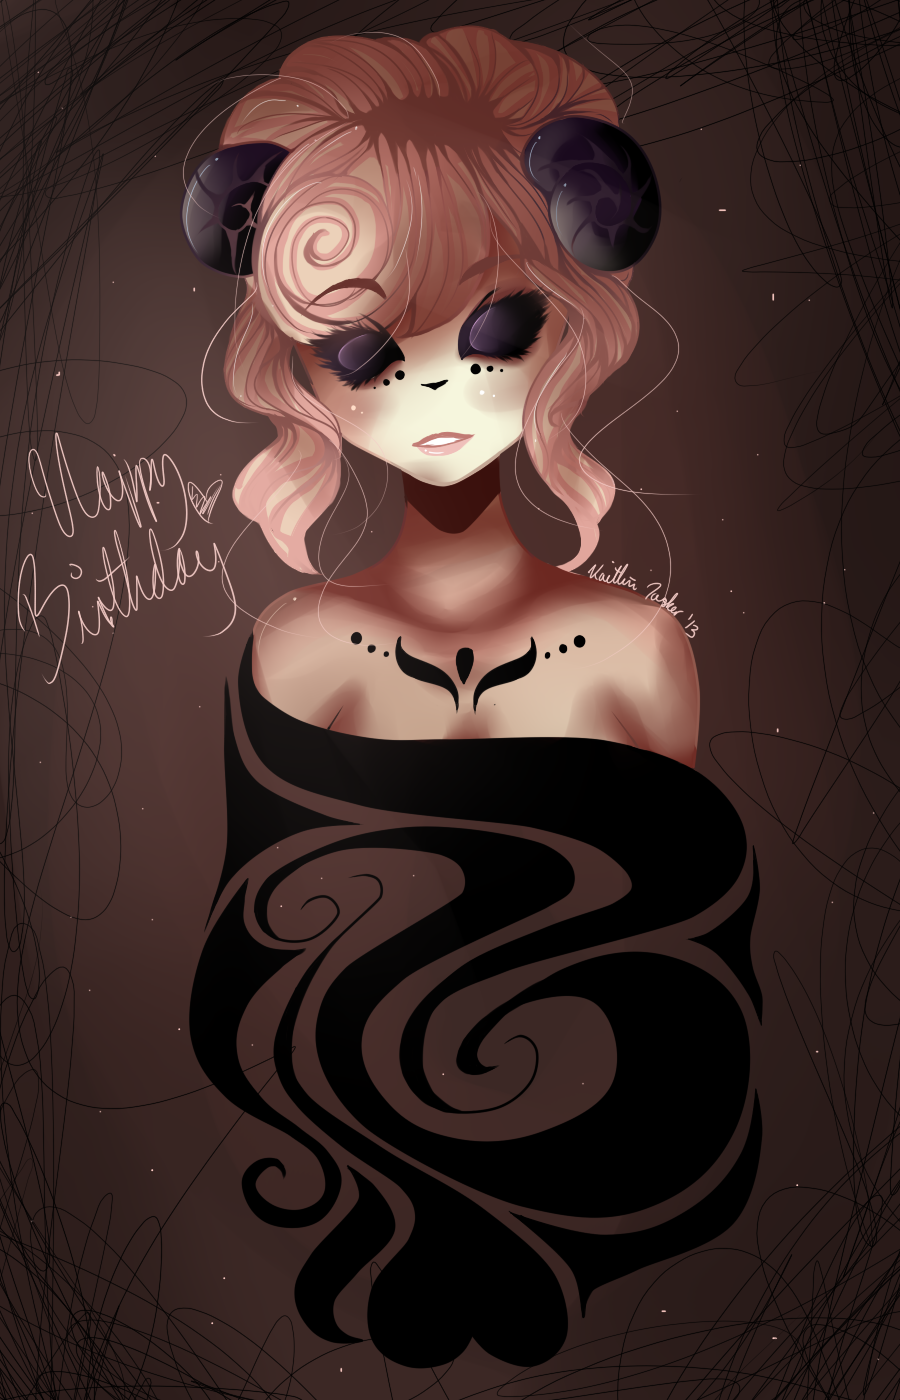 happy superlate birthday miribum c: by sad-soup